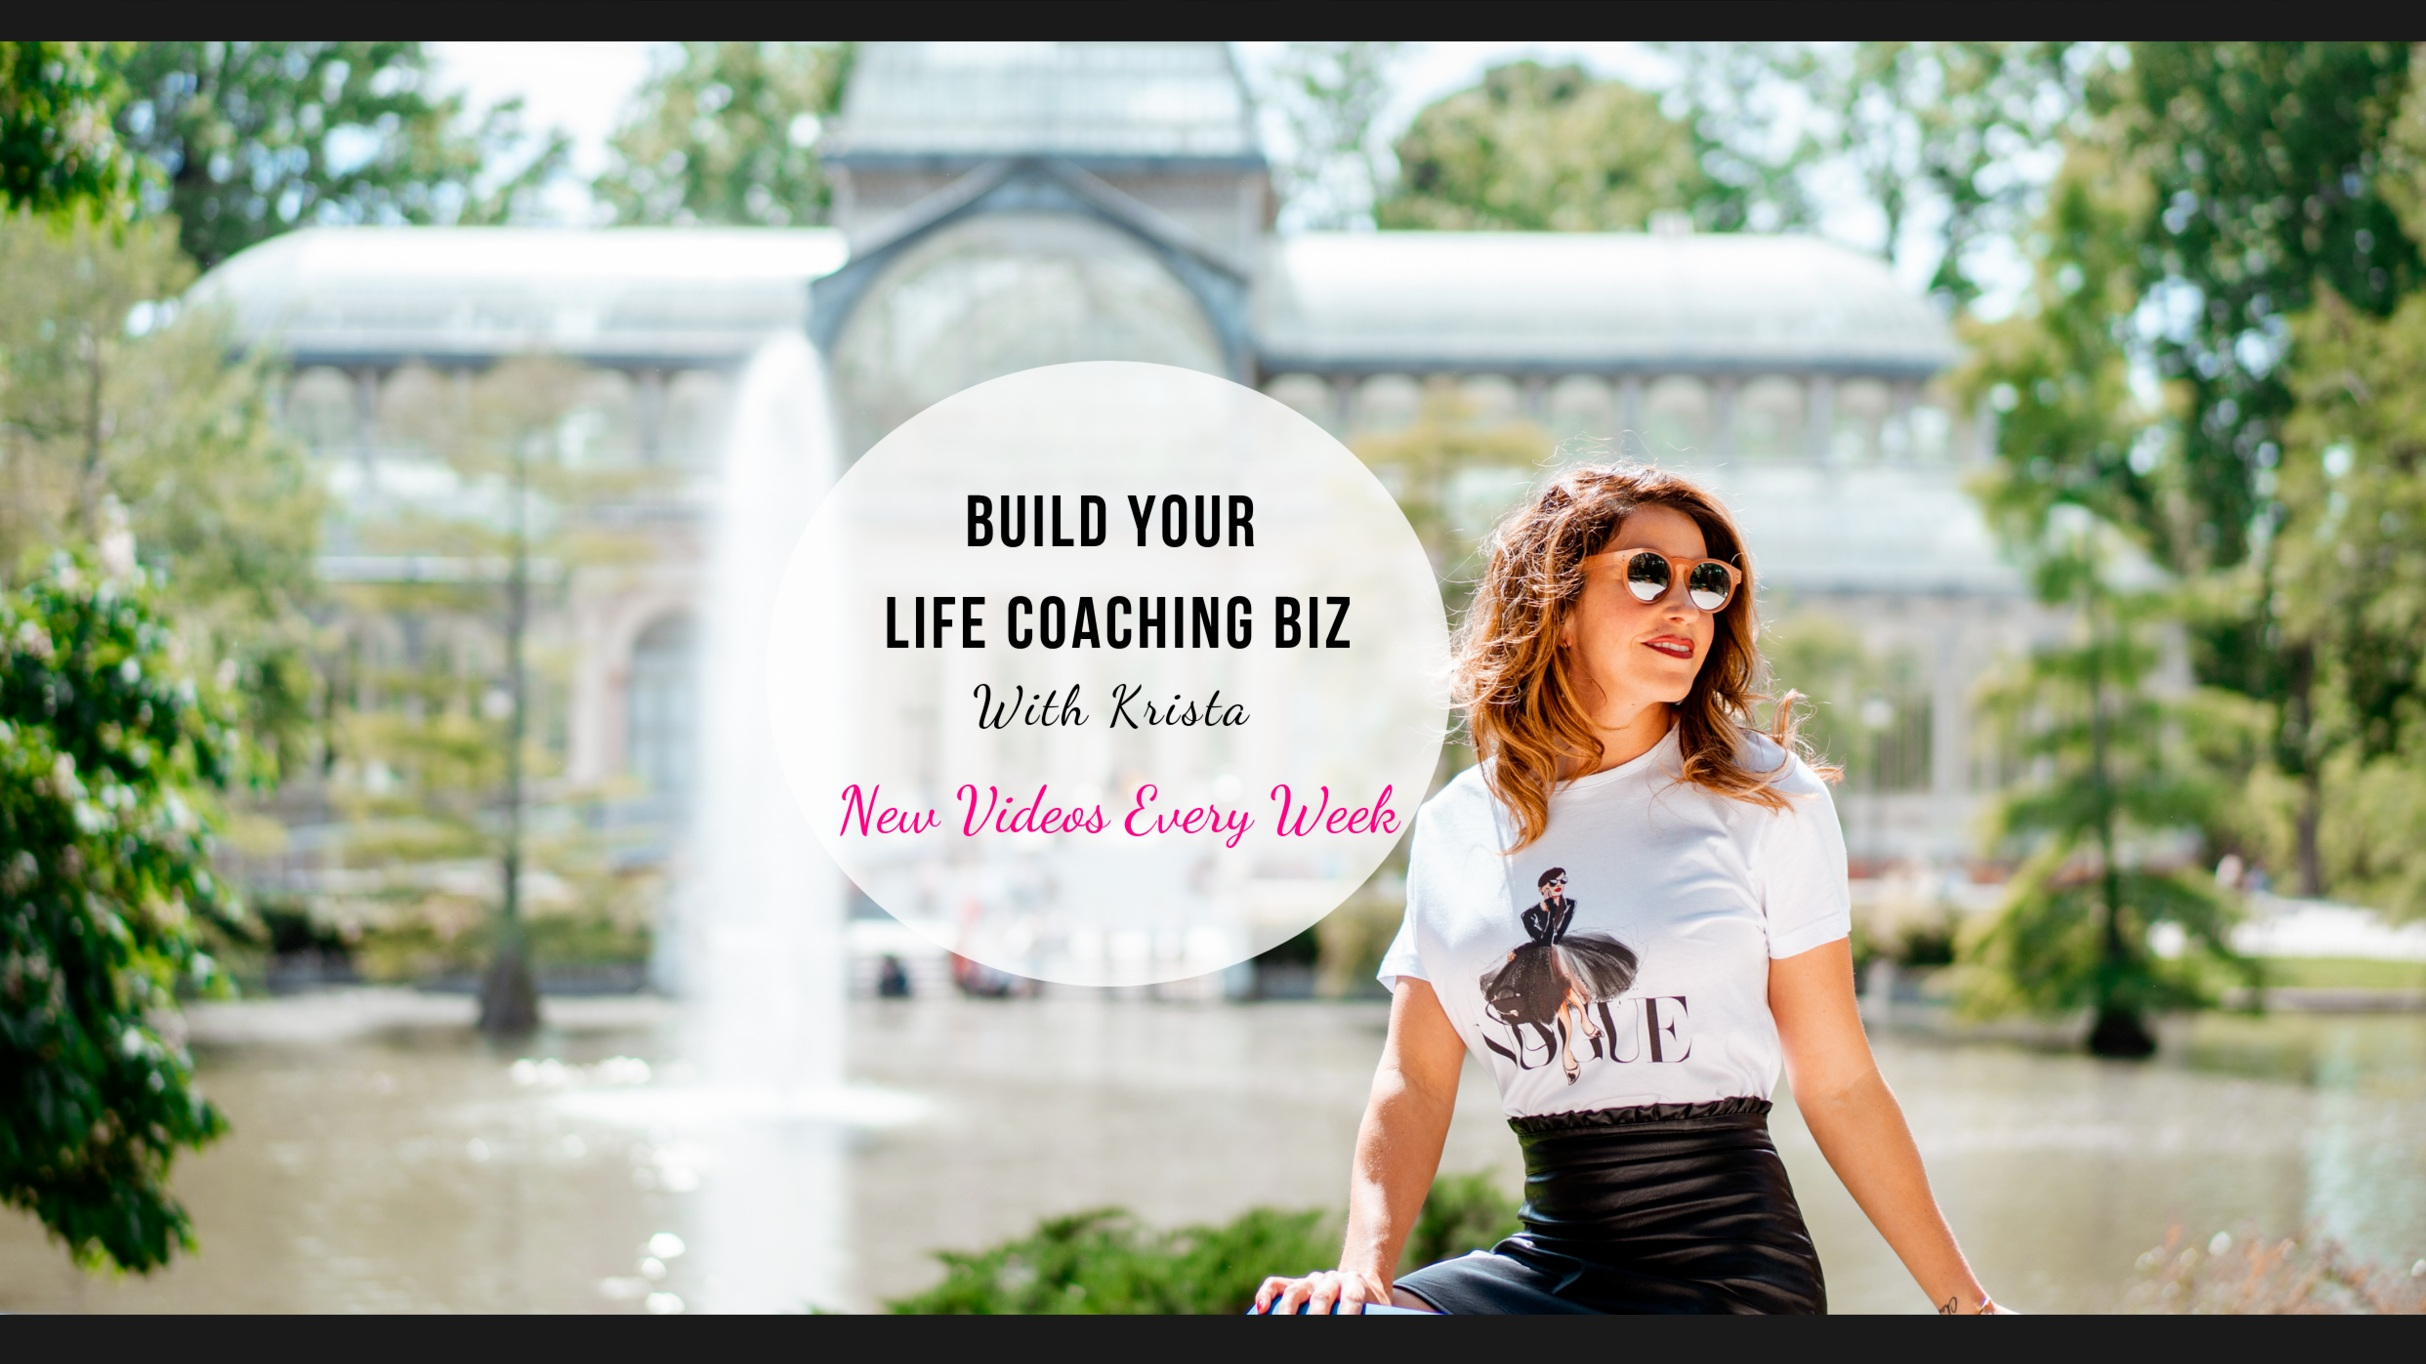 Build Your Life Coaching Biz With Krista - A weekly show designed for passionate women who are looking to create a location Independent lifestyle, change others lives, and share their story with the worldGet ready for strategy, live coaching, breakthroughs, and inspiration that will make it exciting to start following your true path in life.So stop waiting and start creating…